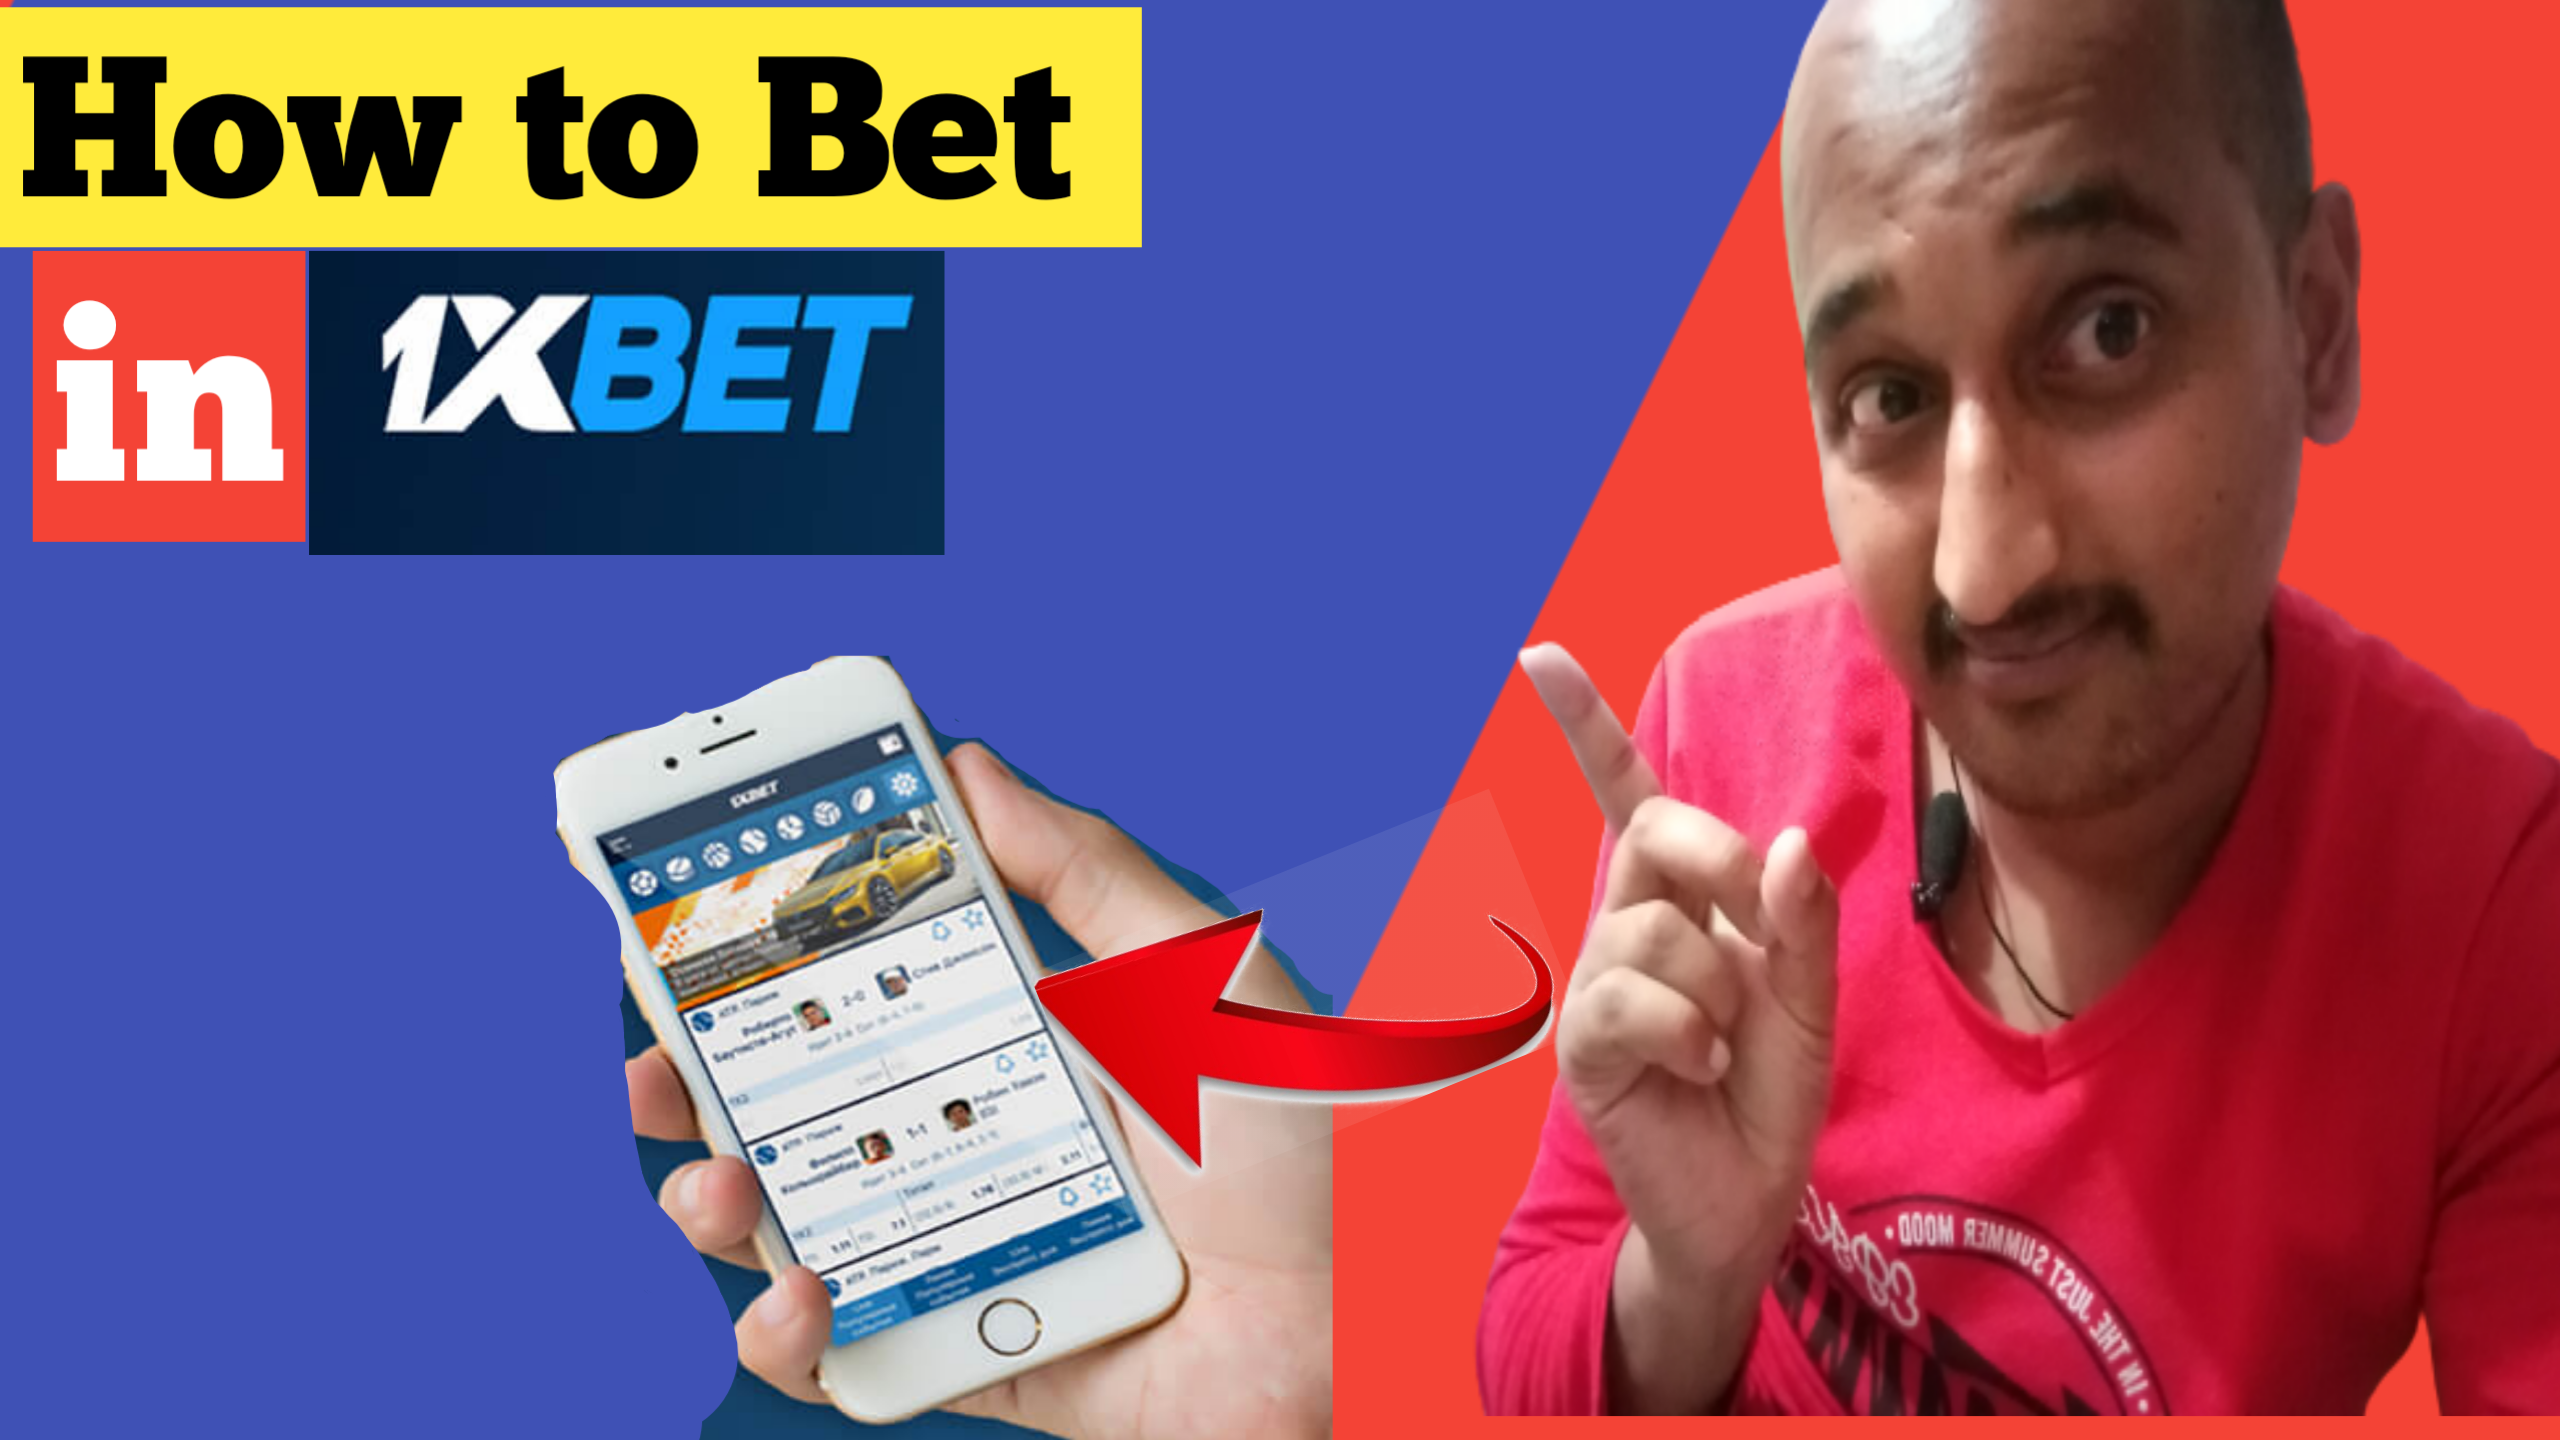 How to Bet in 1xbet in Nepal 2021 on Mobile Apps